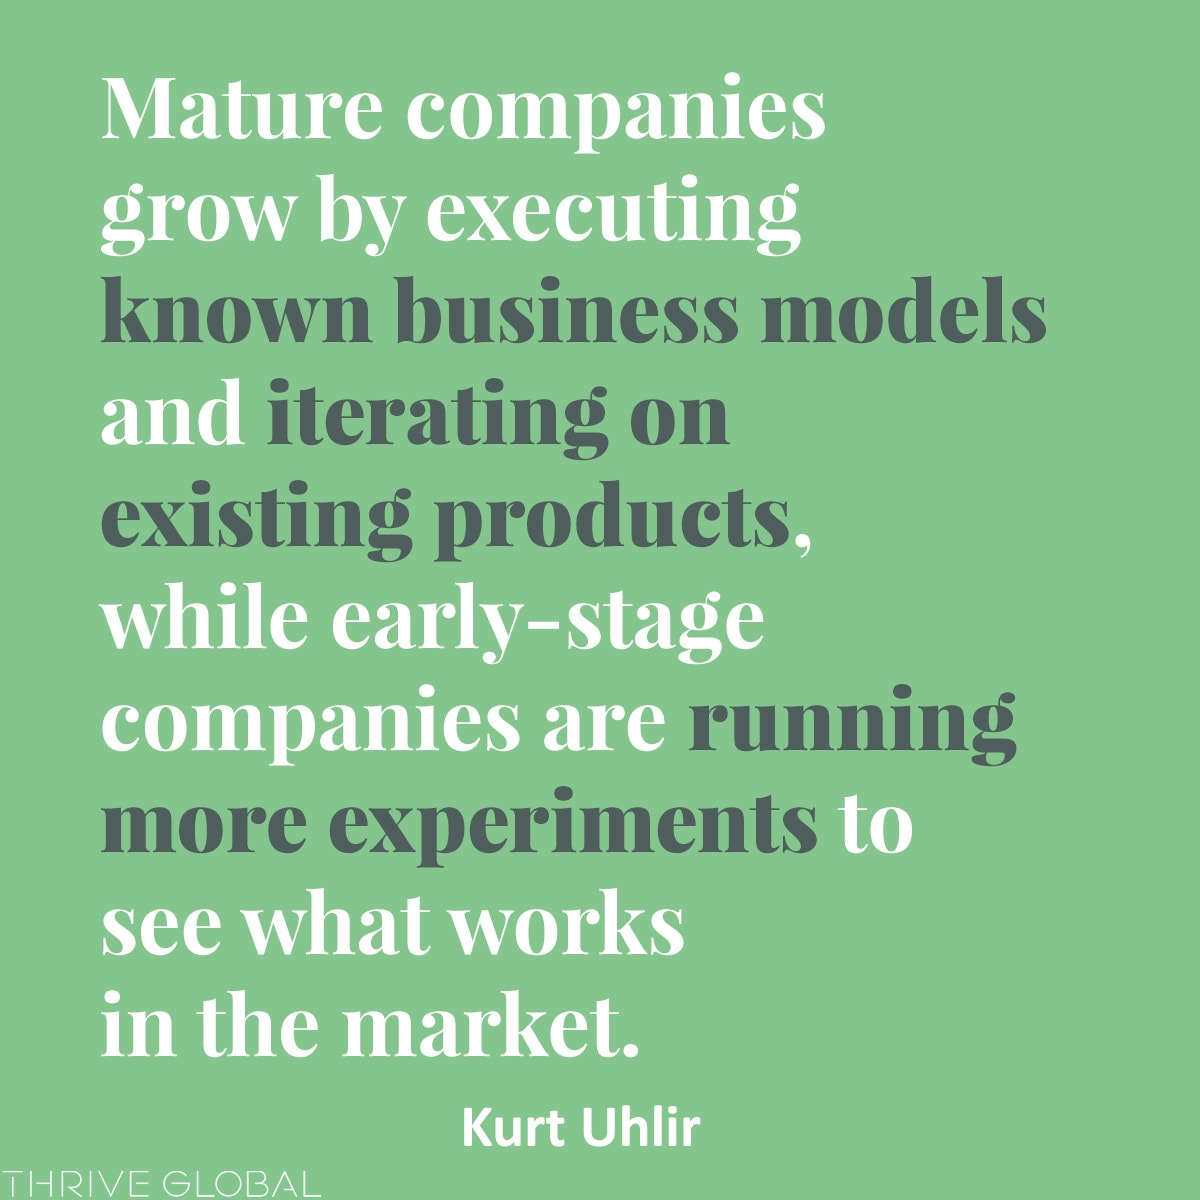 early-stage companies